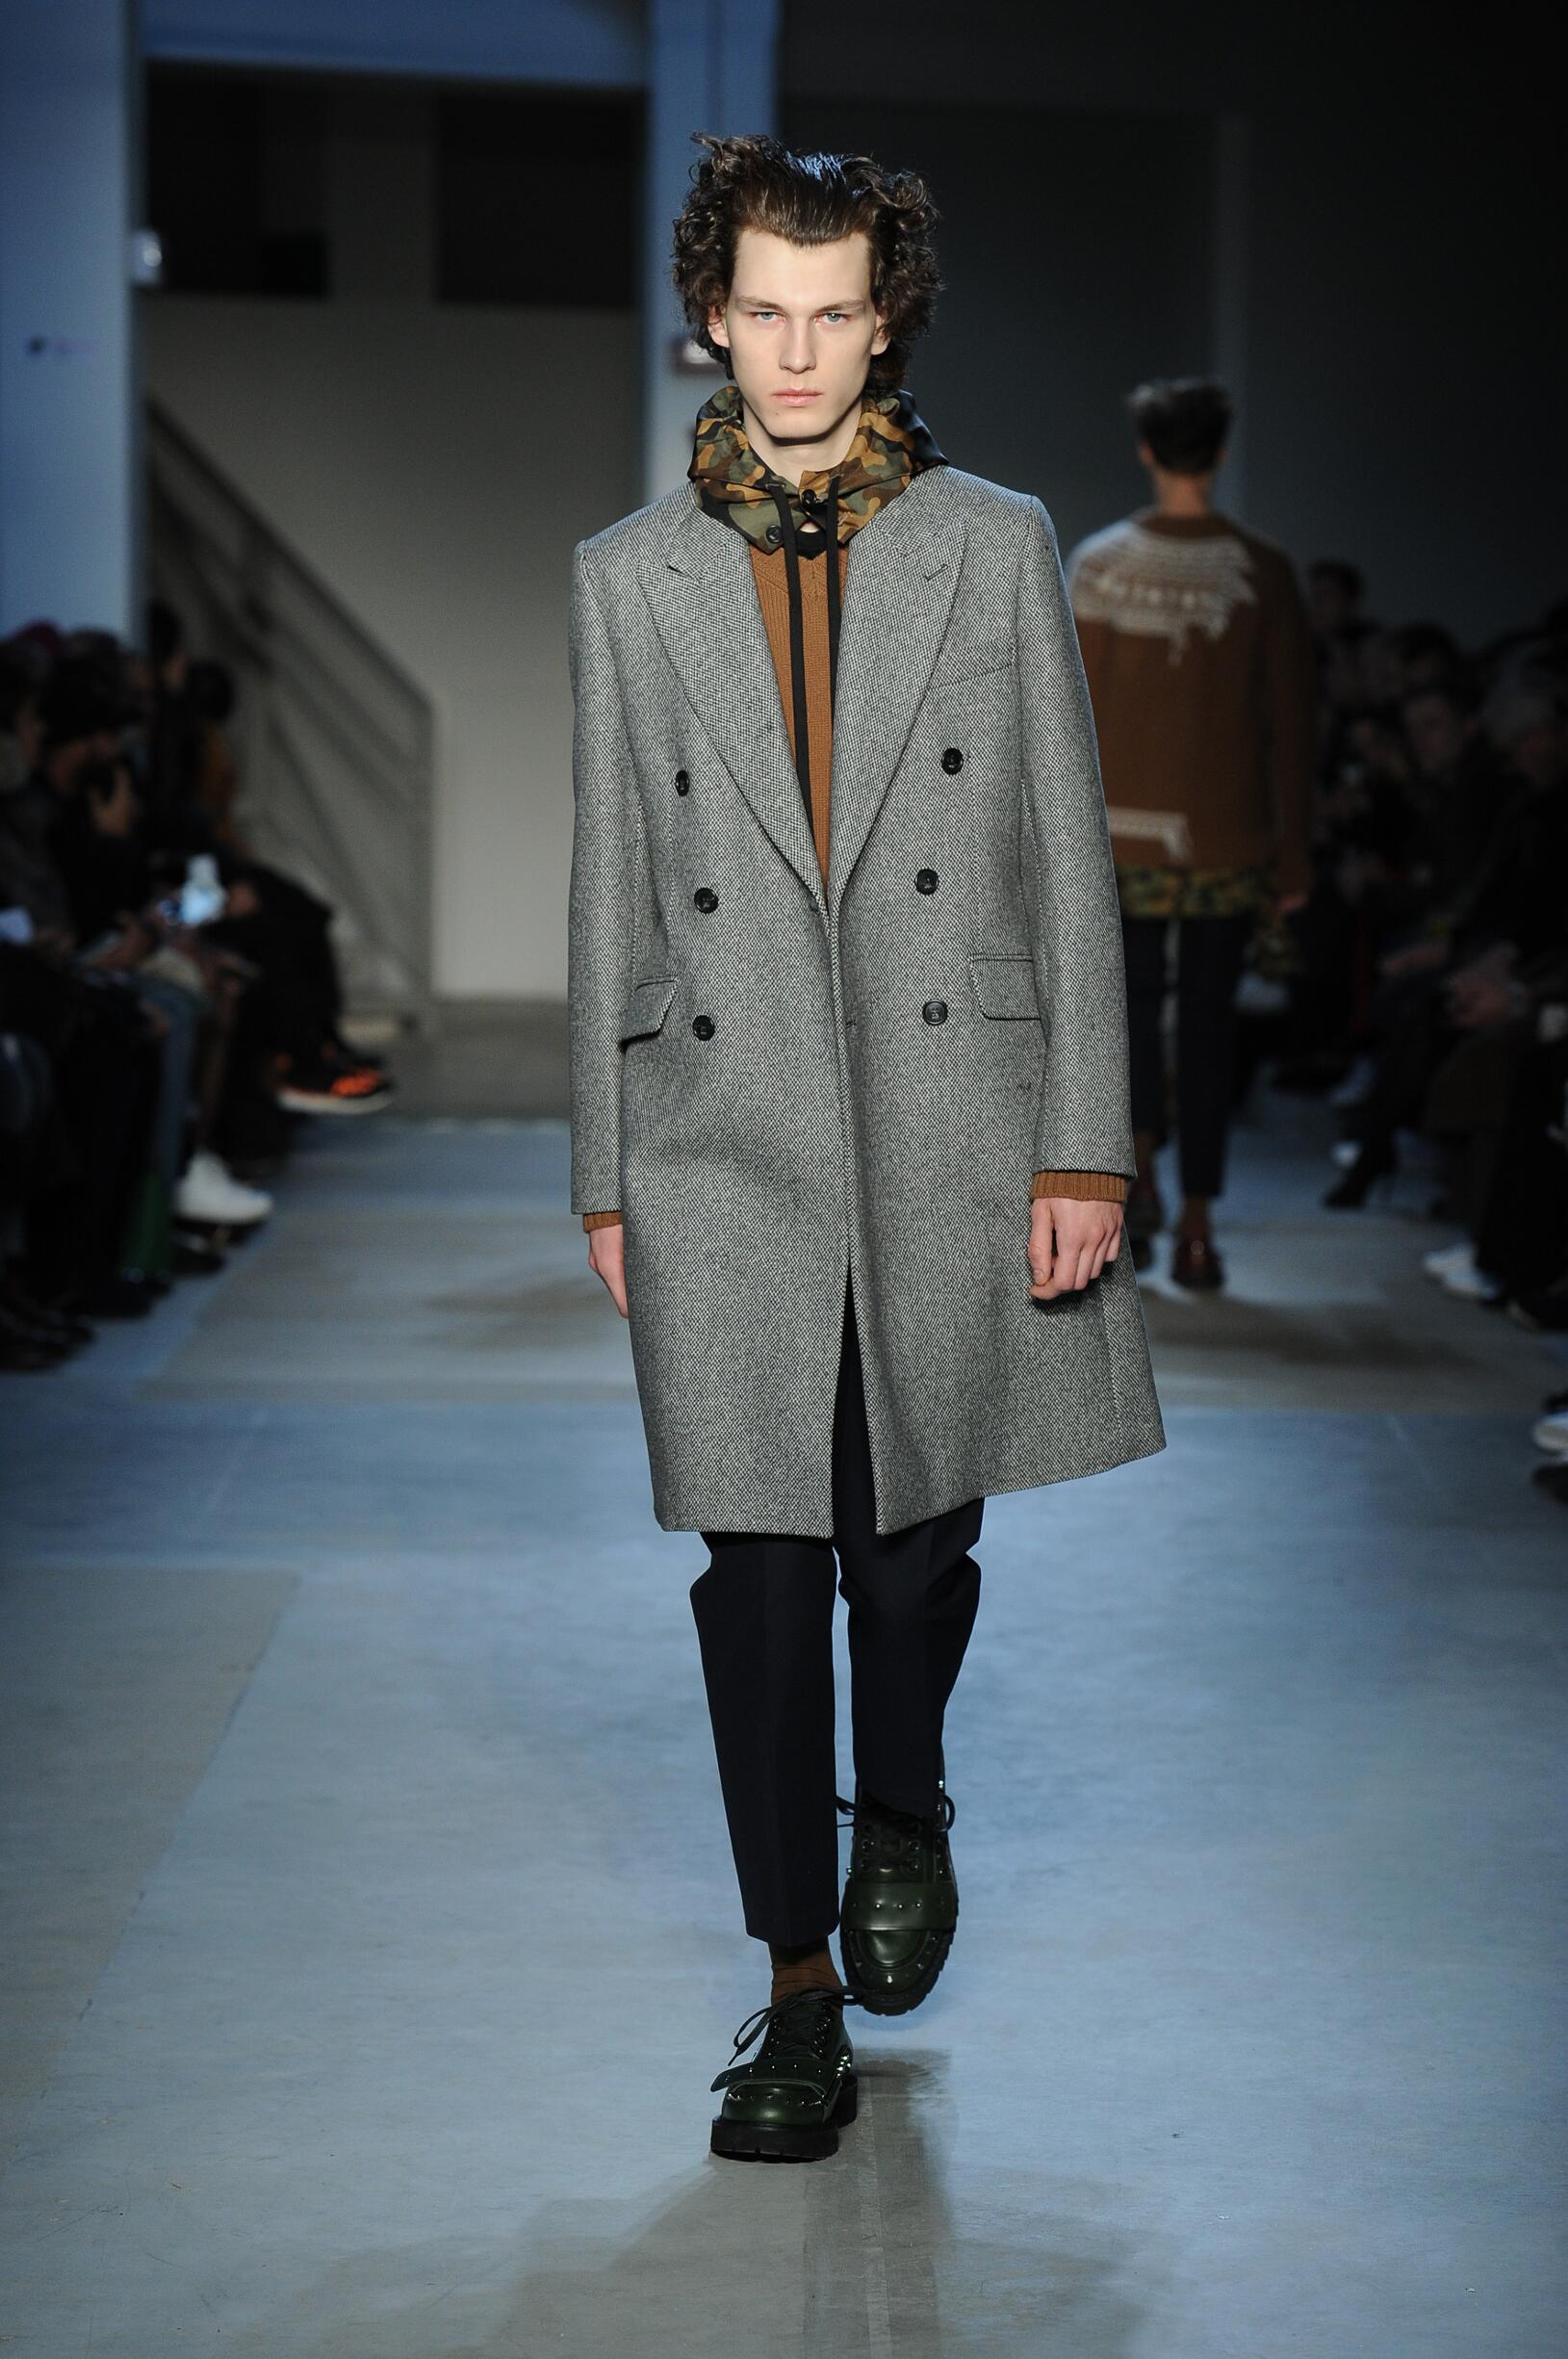 Fashion Man Model N°21 Catwalk